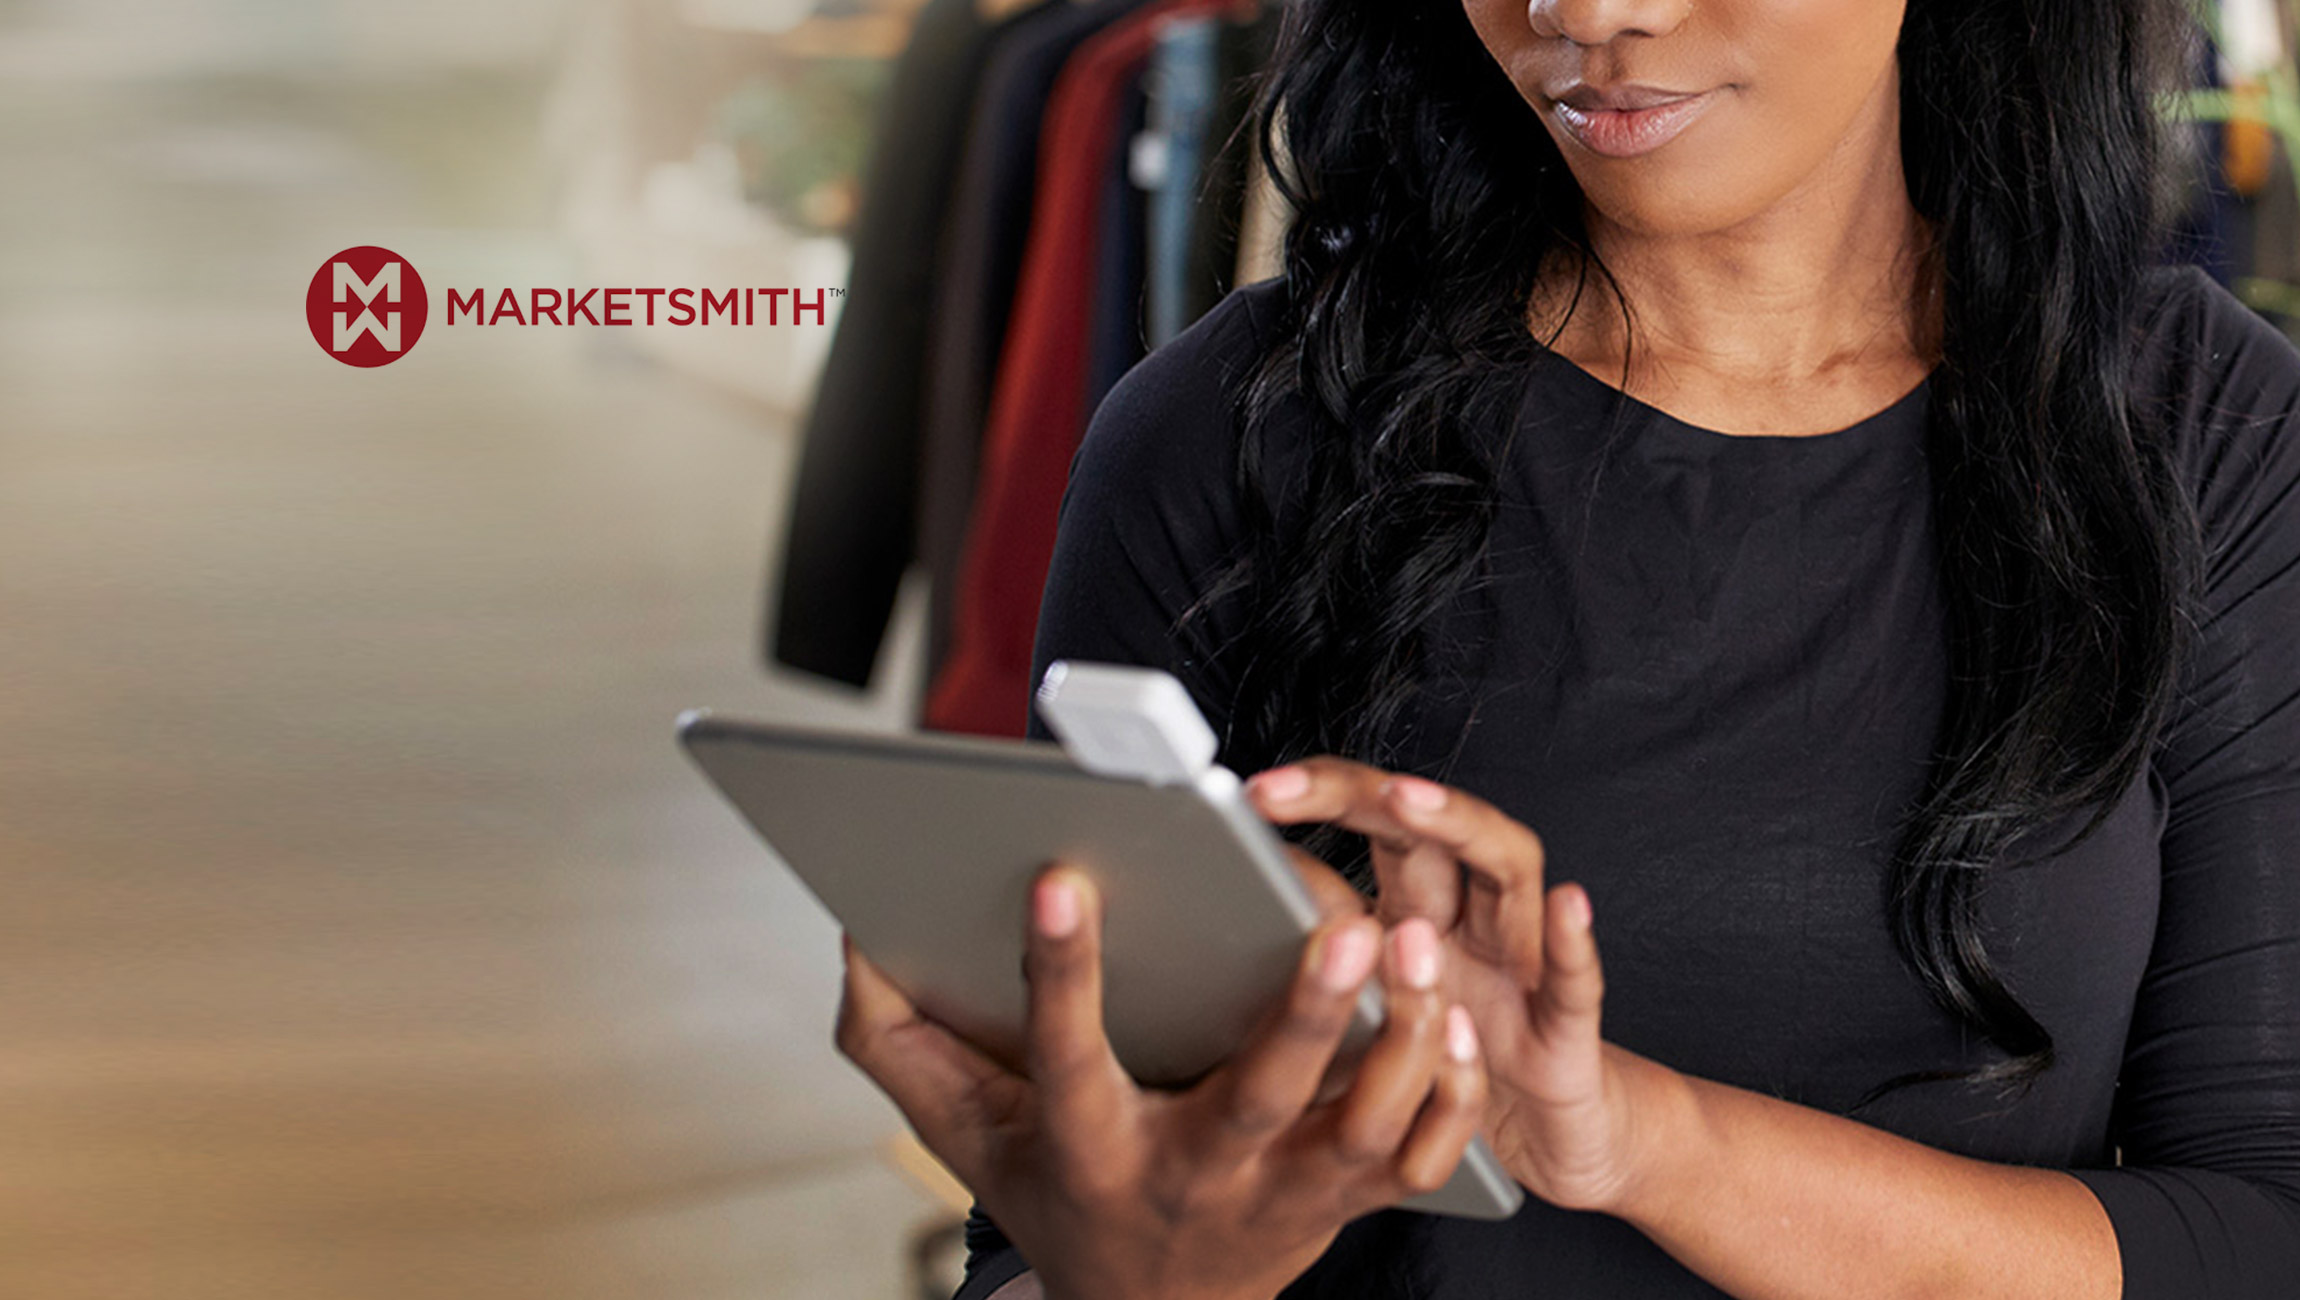 Marketsmith, Inc. Introduces Retail Intelligence